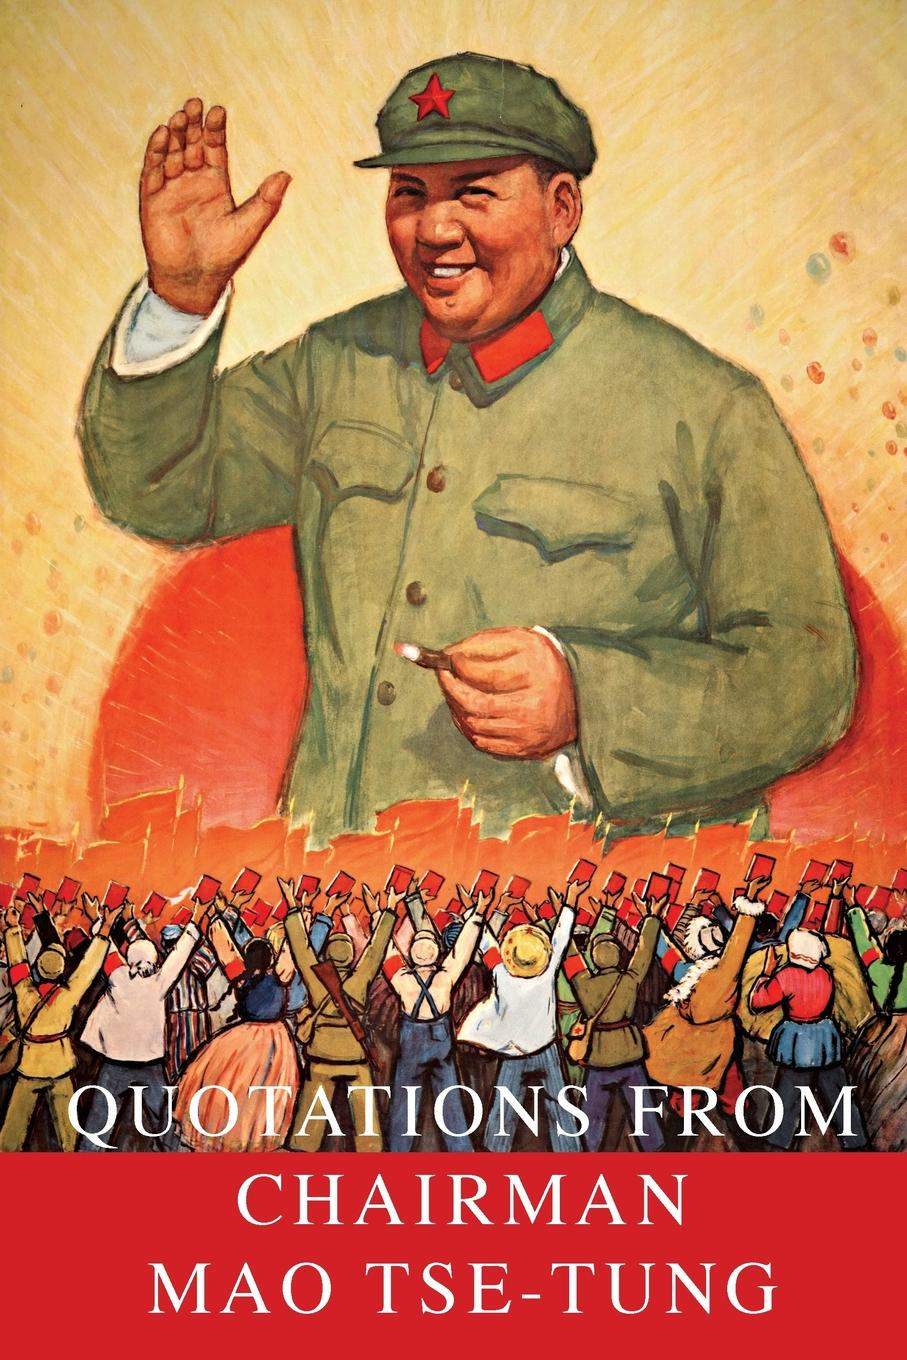 Mao Tse-Tung Quotations From Chairman Mao Tse-Tung